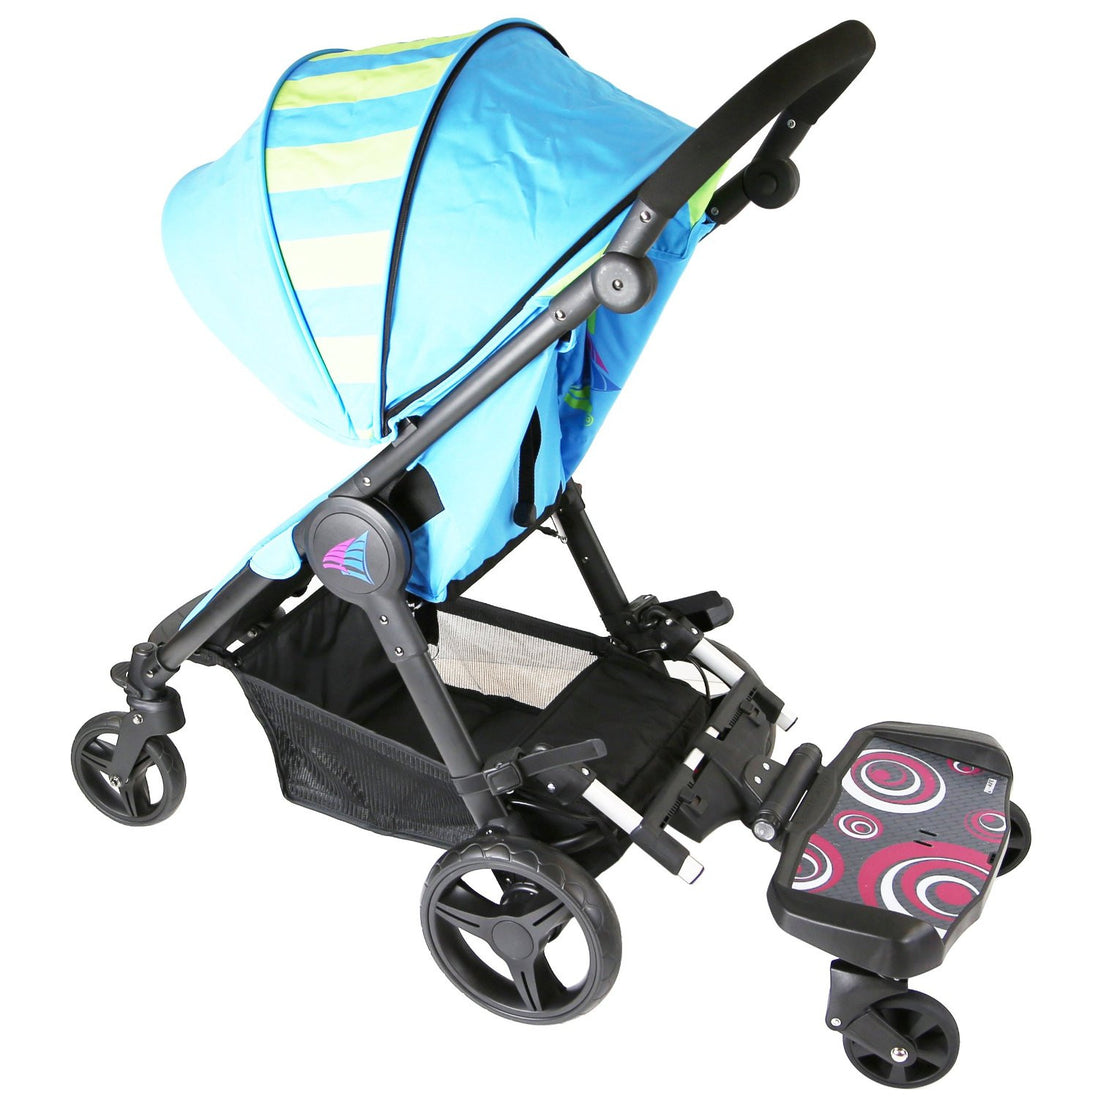 iSafe Car-seat Protection Travel Bag for Joie GEMM Infant Car Seat